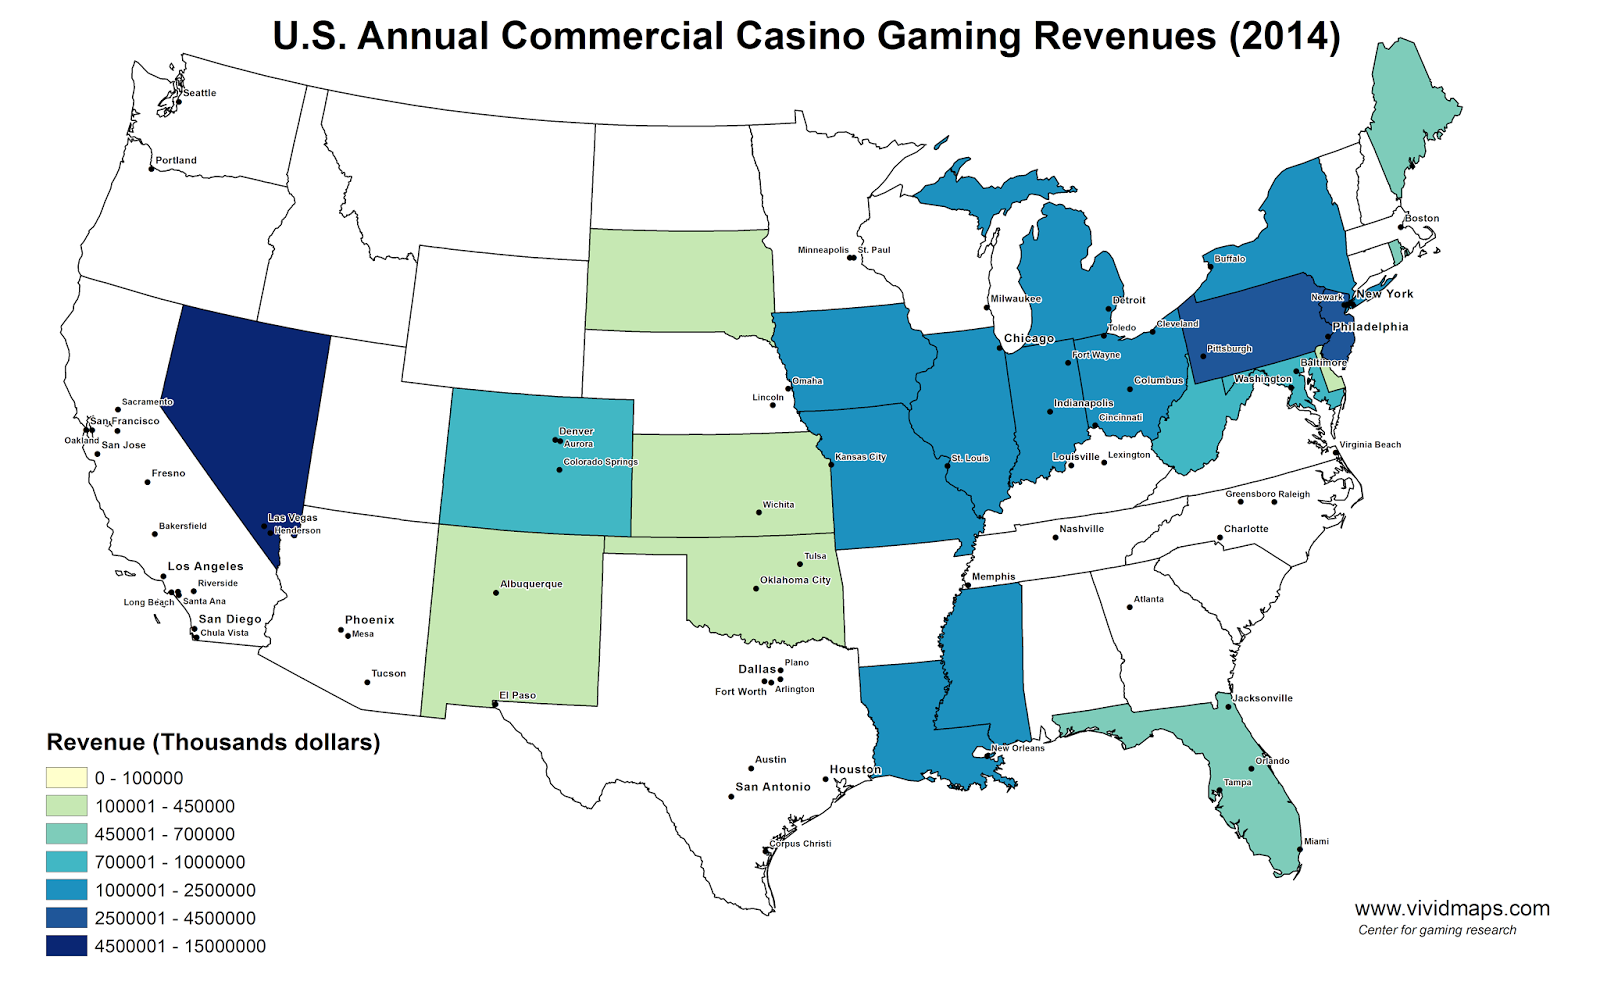 U.S. Annual Commercial Casino Gaming Revenues (2014)